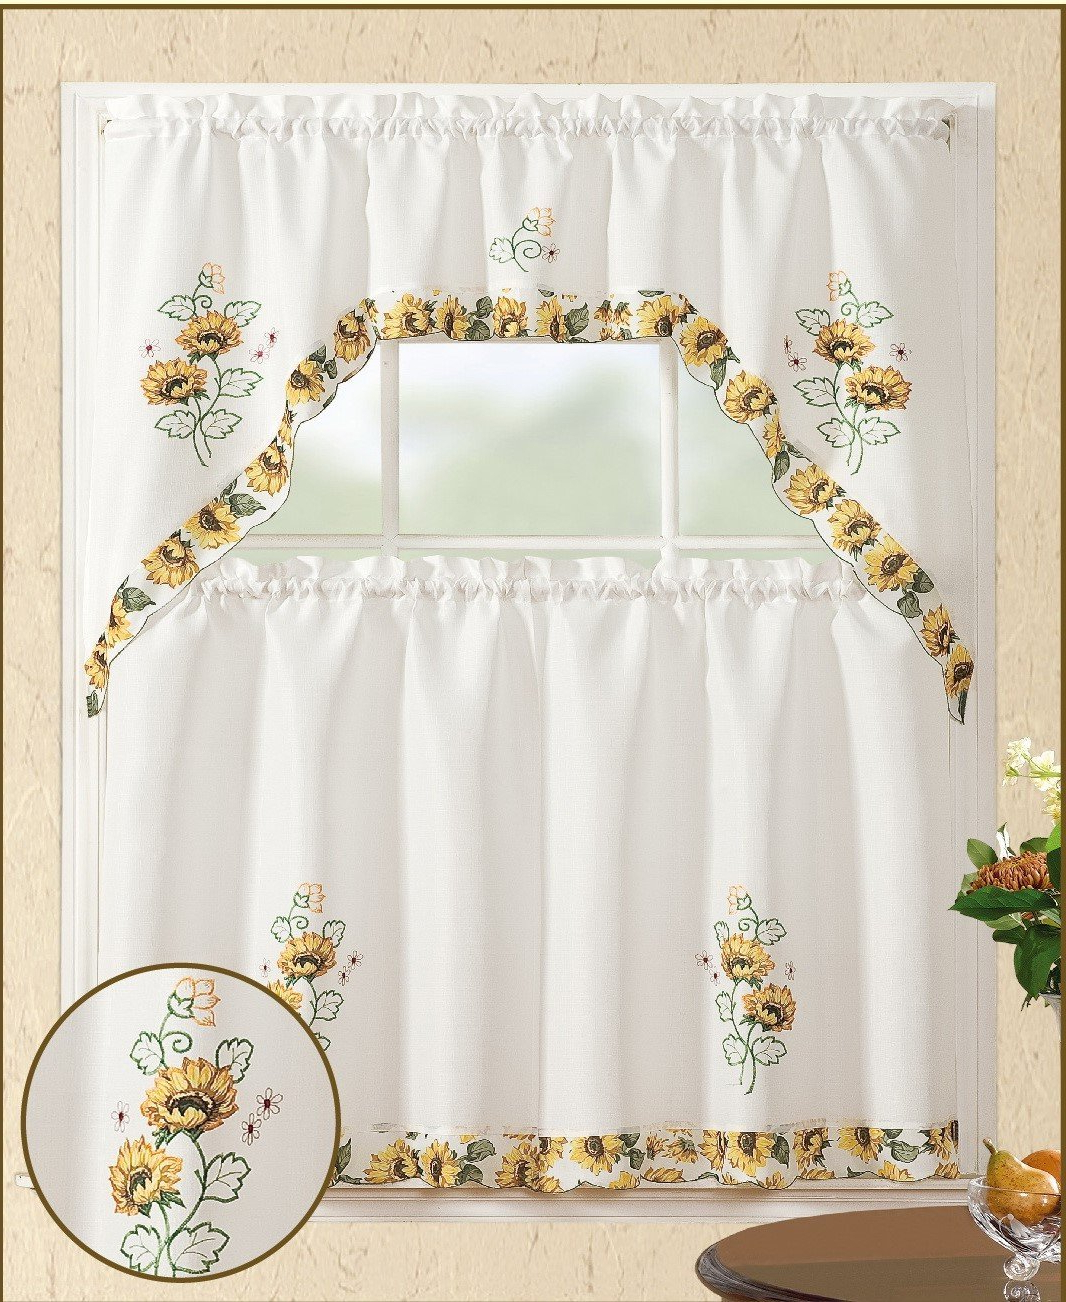 Newest Details About All American Collection 3Pc Sunflower Kitchen Curtain Set Pertaining To Traditional Tailored Window Curtains With Embroidered Yellow Sunflowers (View 14 of 20)